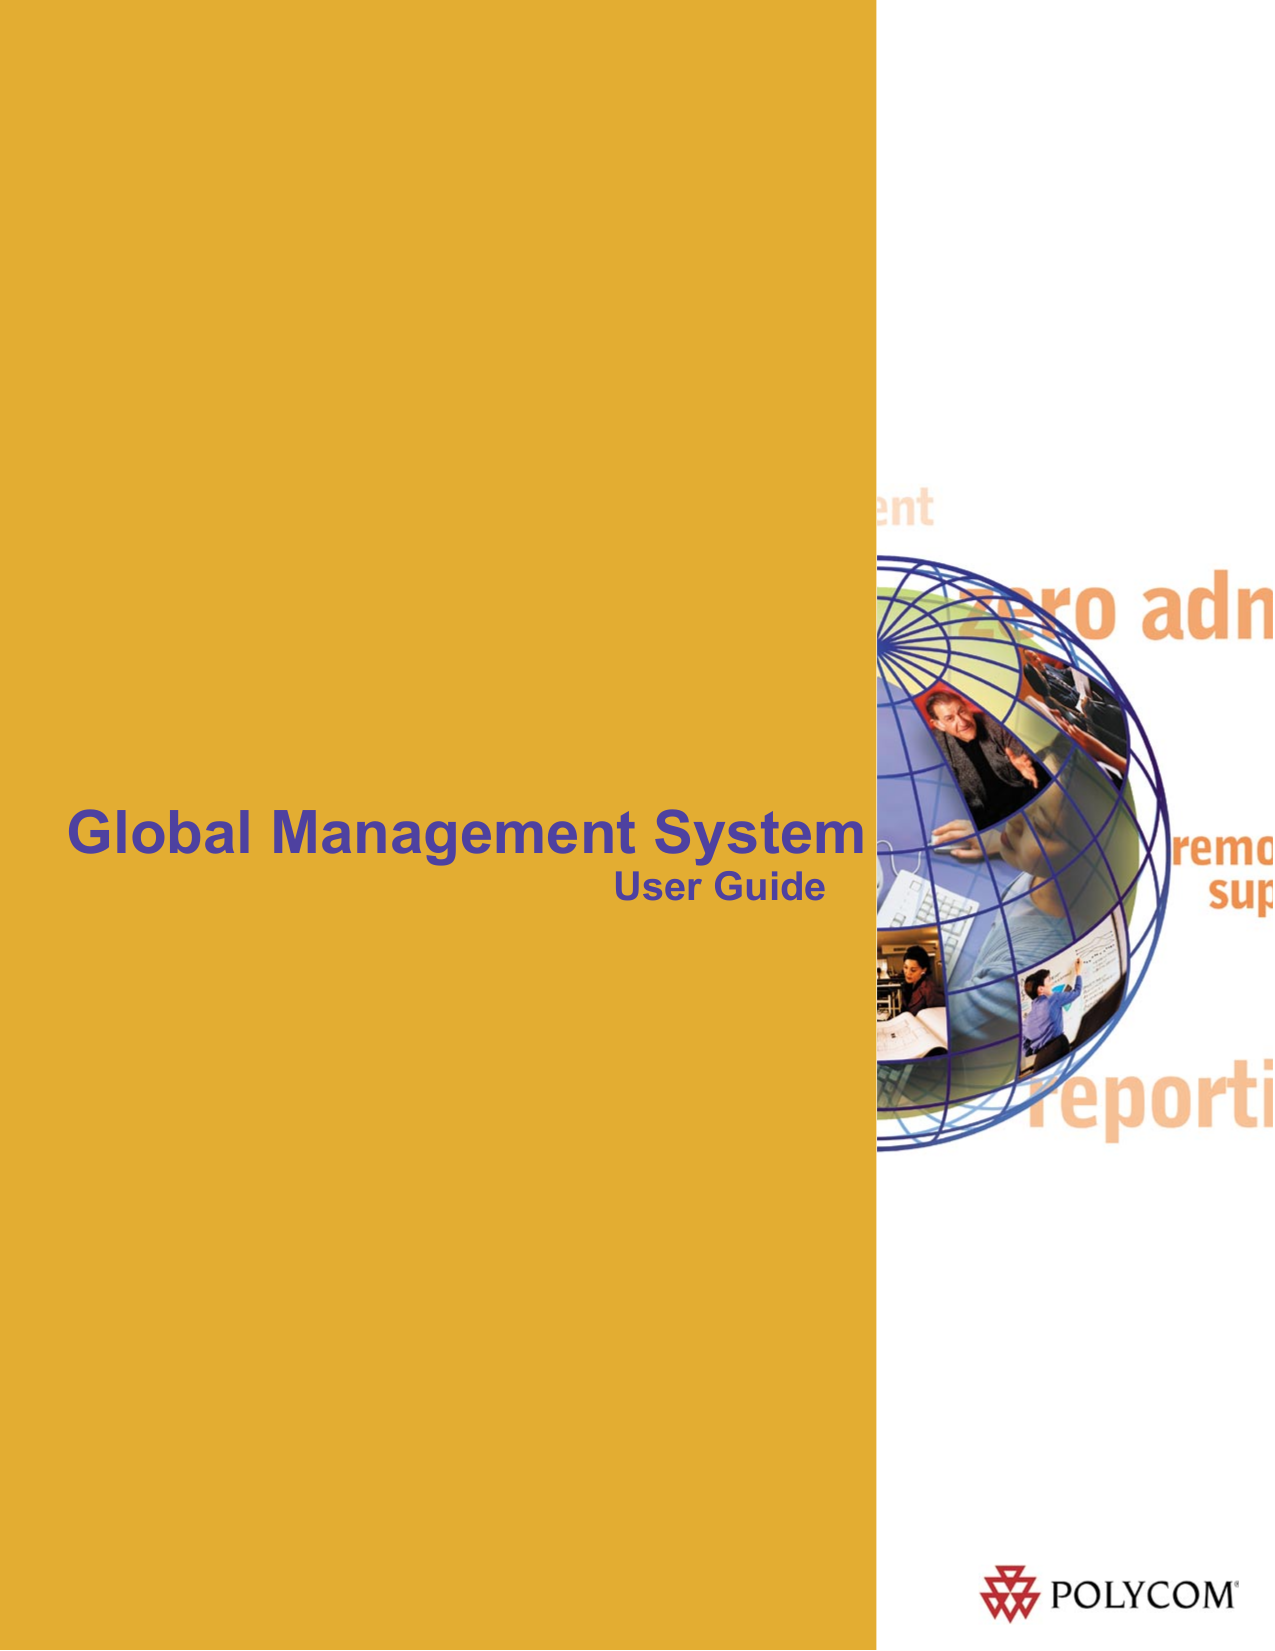 global port management system Cloud based infyz terminal operating system specialized in tos software solutions and port operations automation to manage cargoes like container, break bulk, liquid bulk, dry bulk and roro.